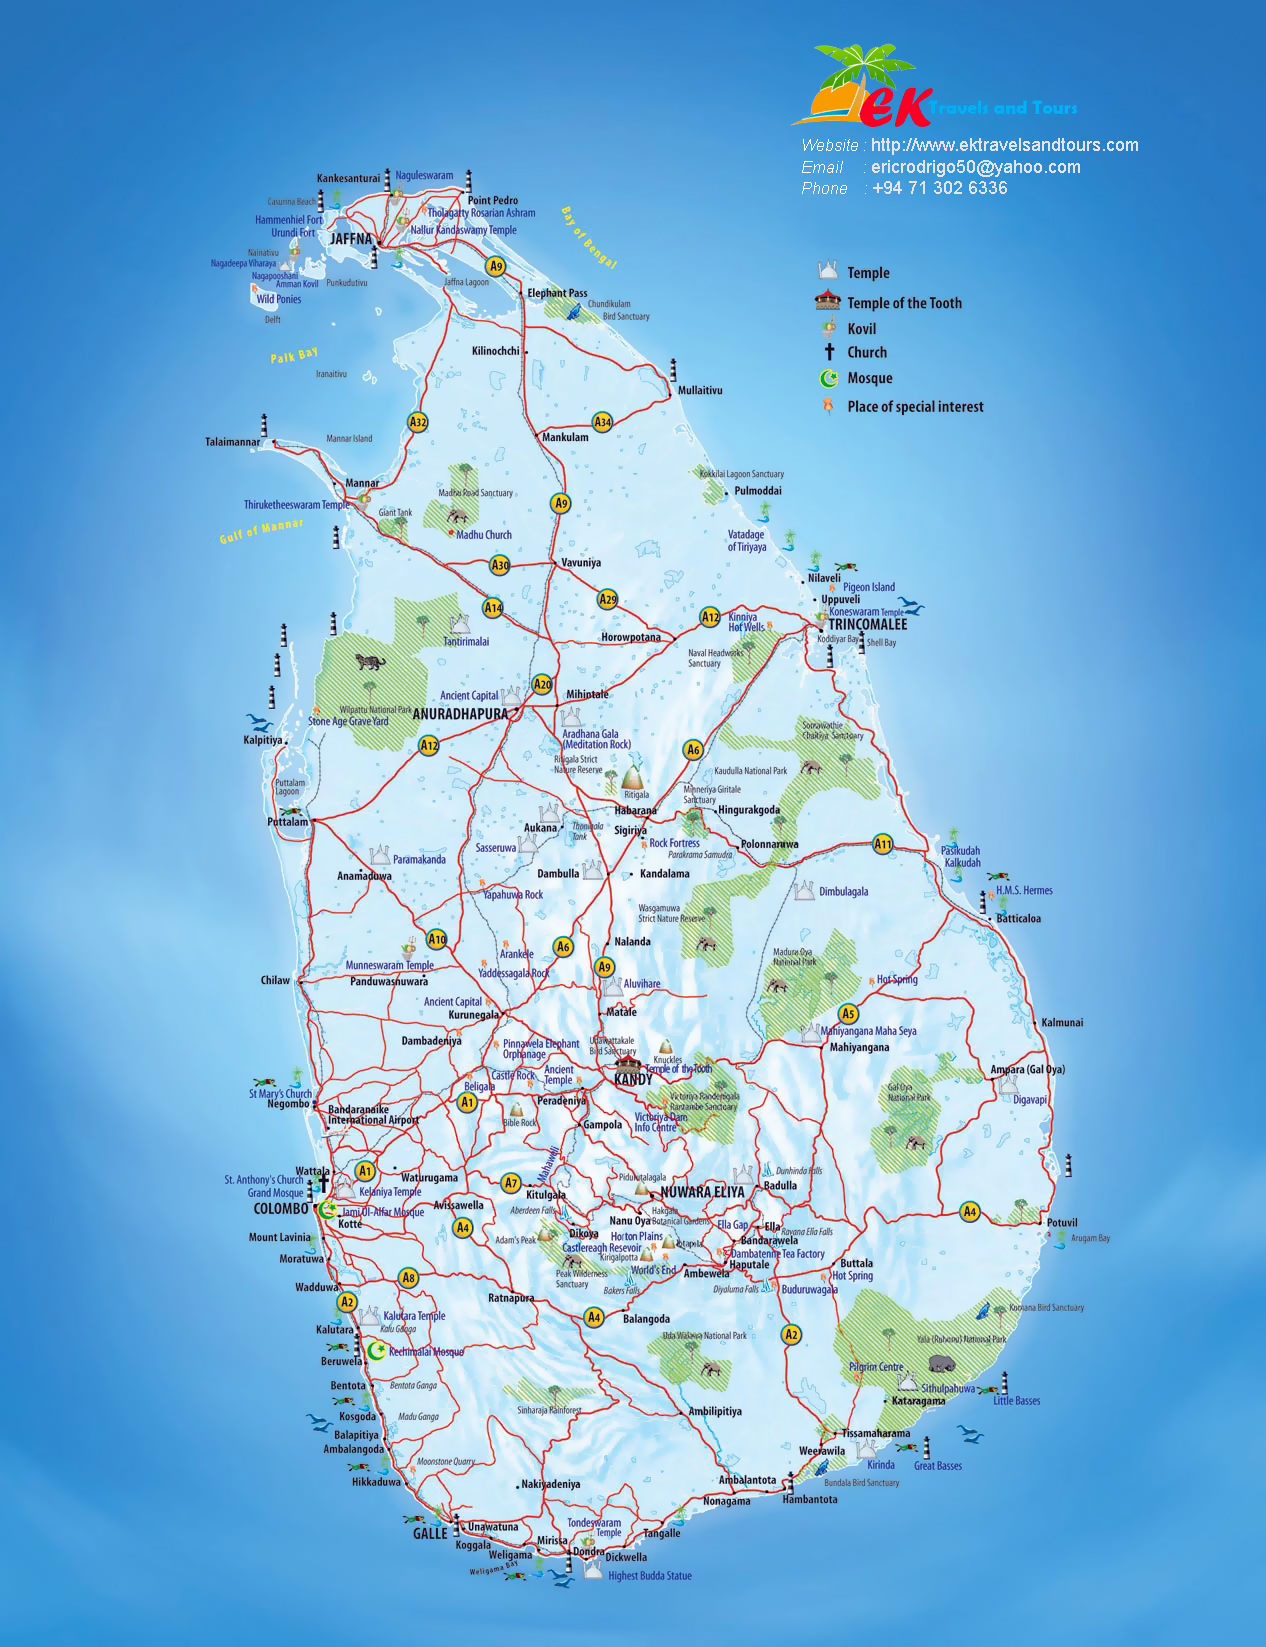 Map Of Asia Sri Lanka.Large Tourist Map Of Sri Lanka With Other Marks Sri Lanka Asia